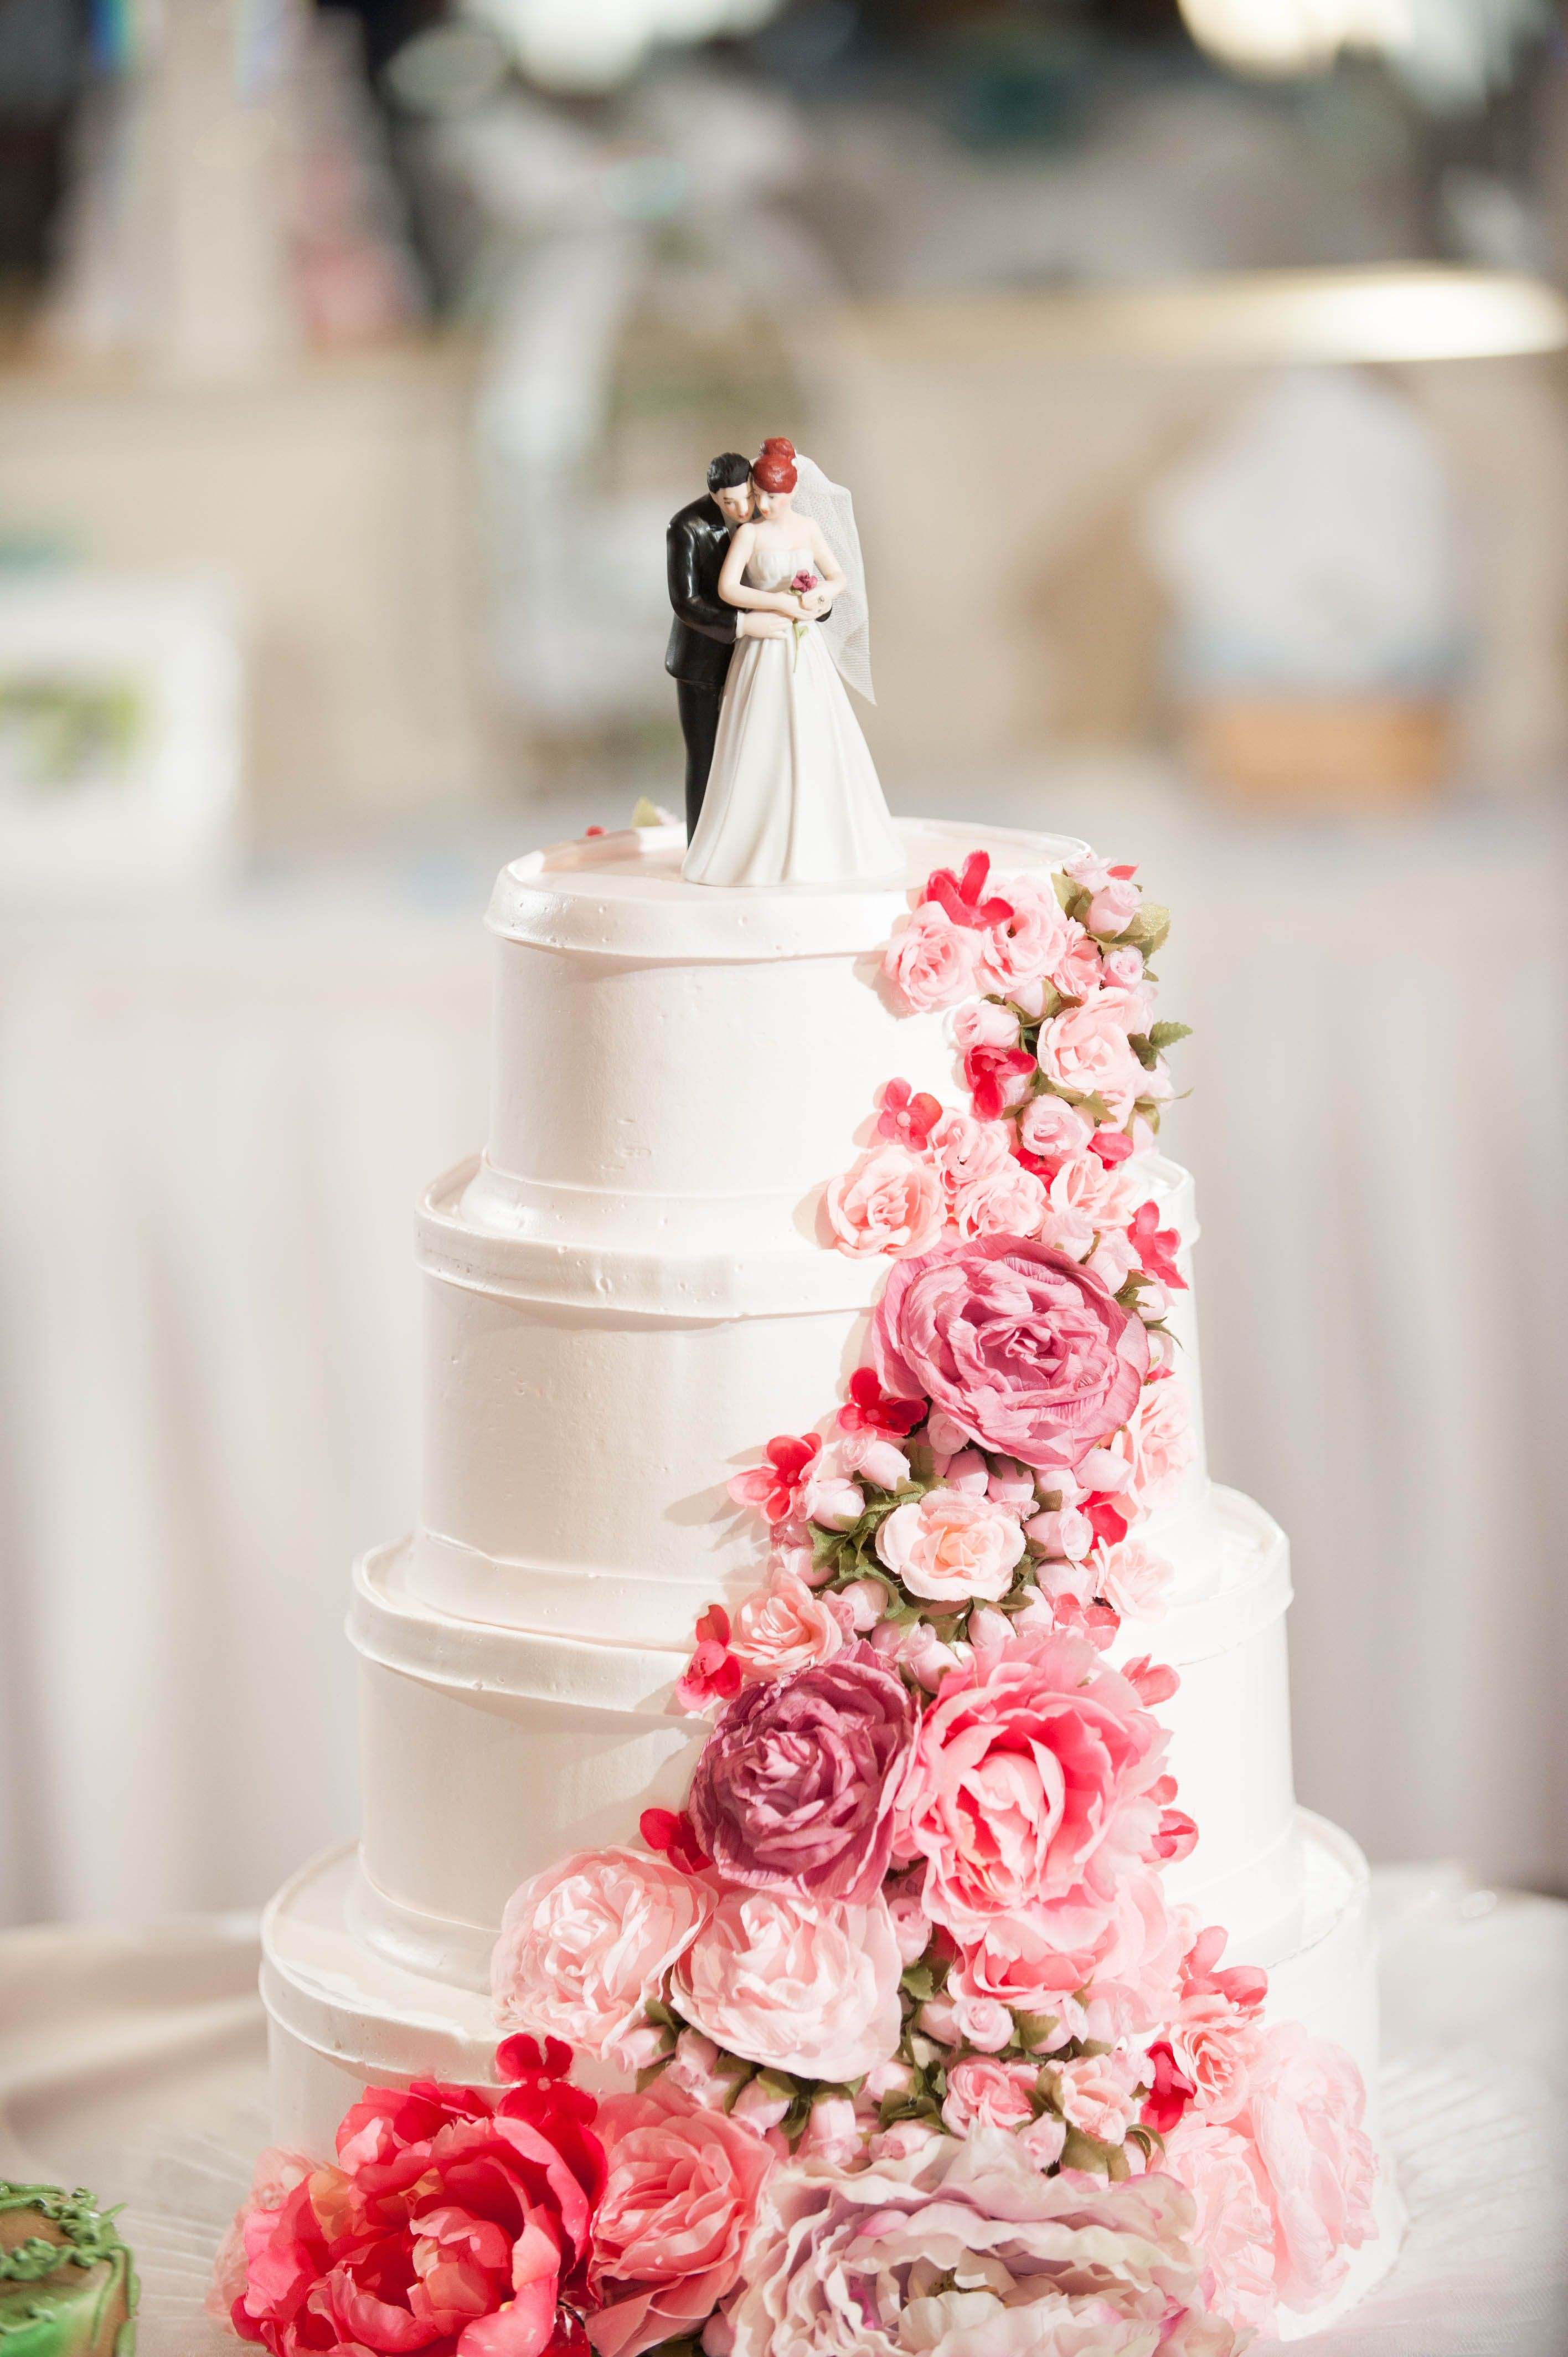 Redhead Cake Topper From Wedding Star Pink Floral With Peonies And Roses Sweeping